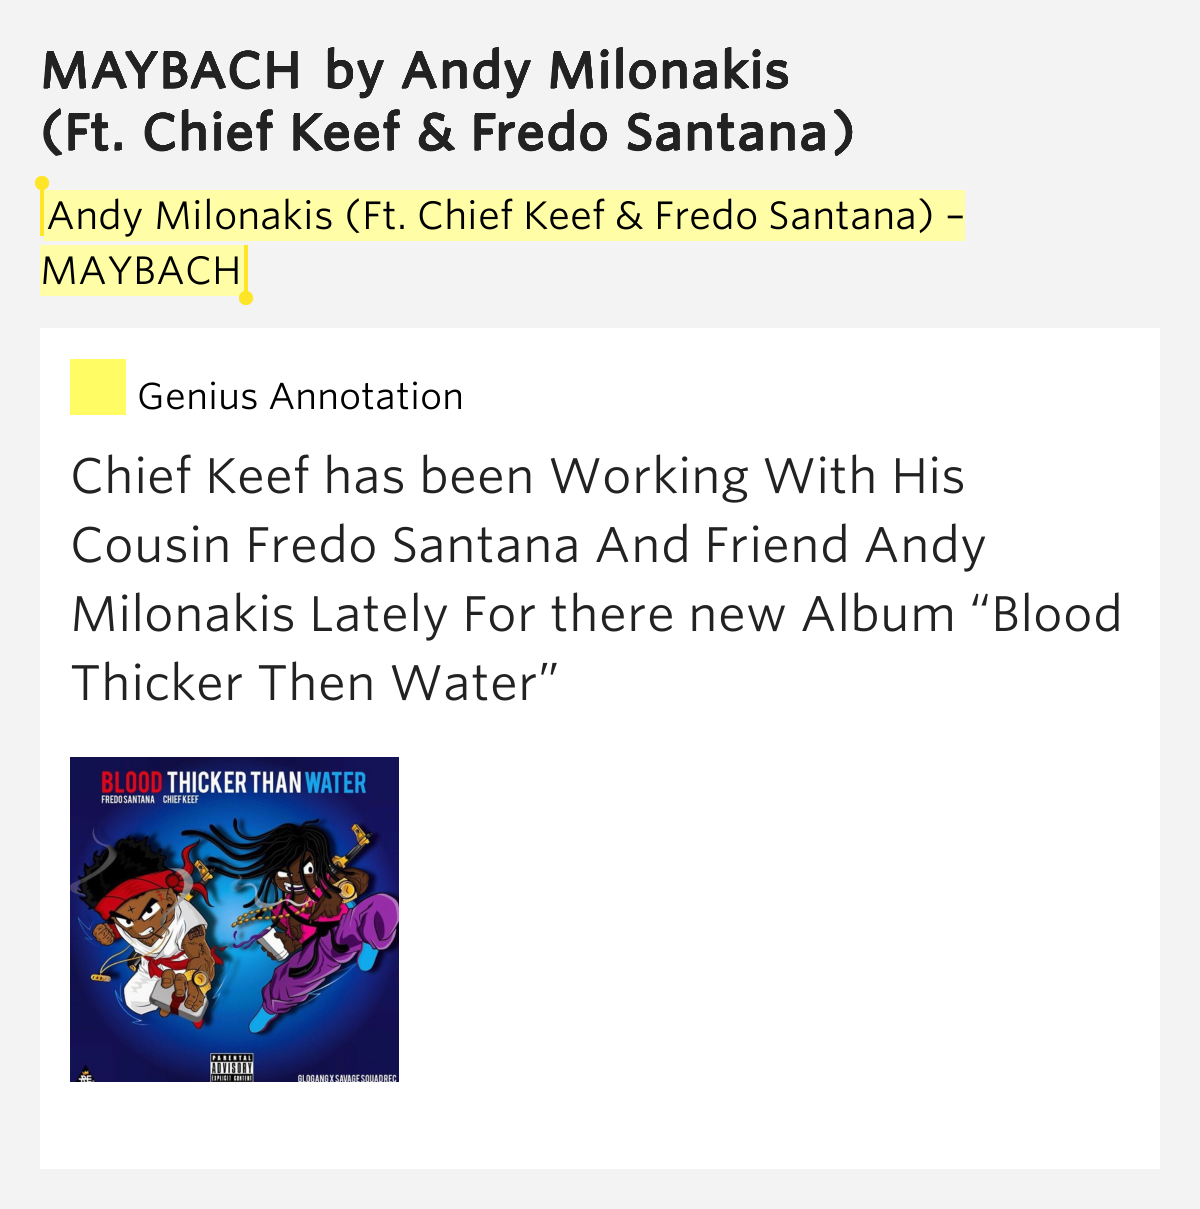 Andy Milonakis (Ft. Chief Keef & Fredo Santana) – MAYBACH ...